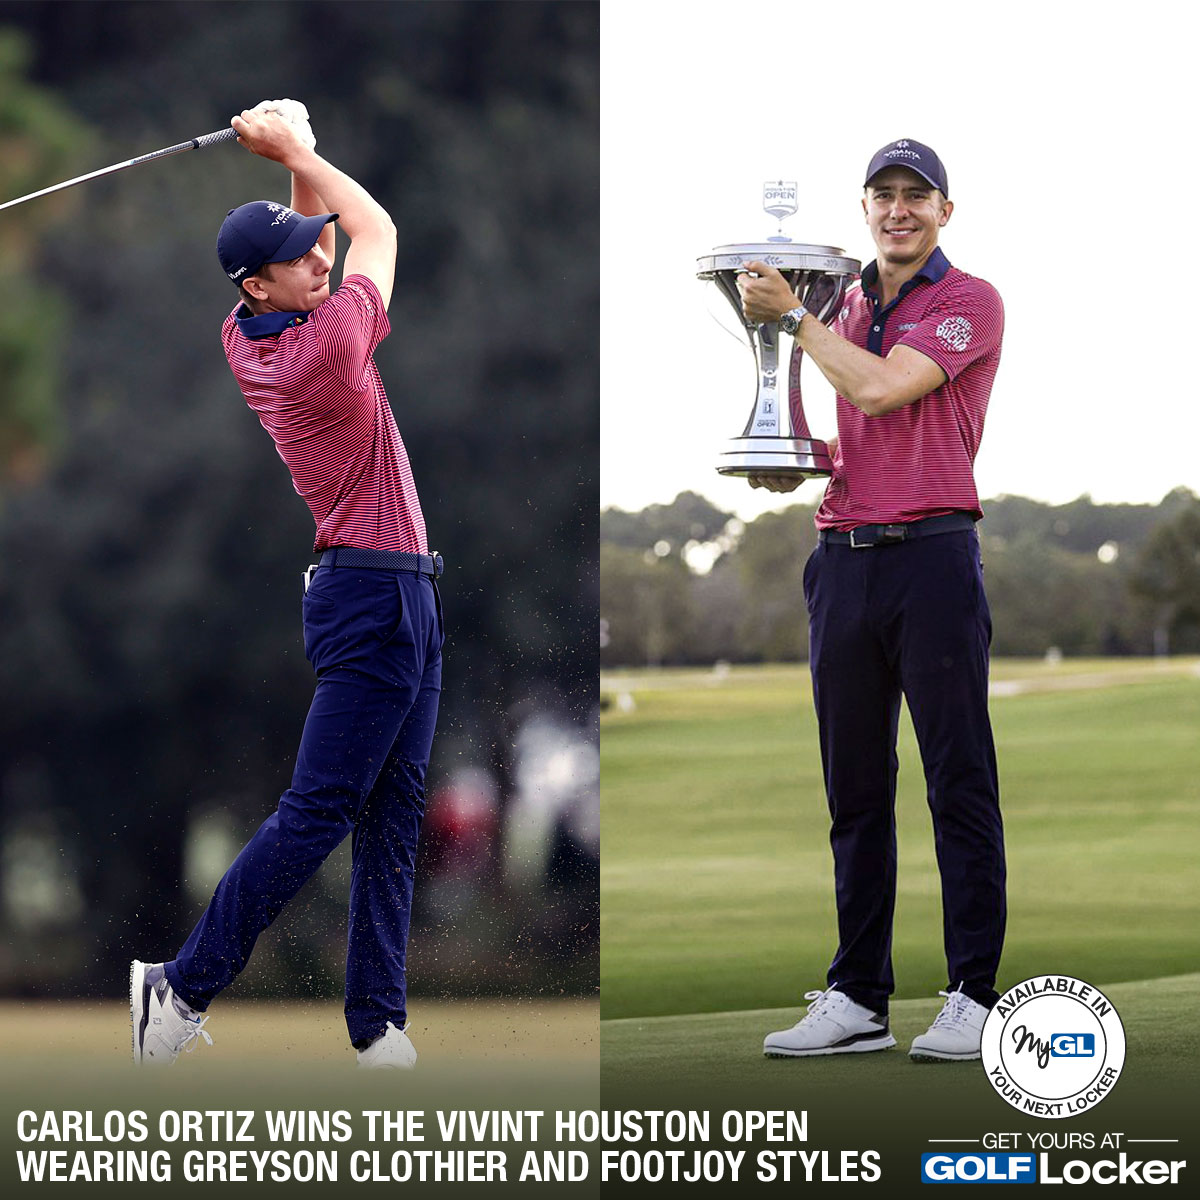 Carlos Ortiz Wins the Vivint Houston Open Wearing Greyson Clothier and FootJoy Golf Styles